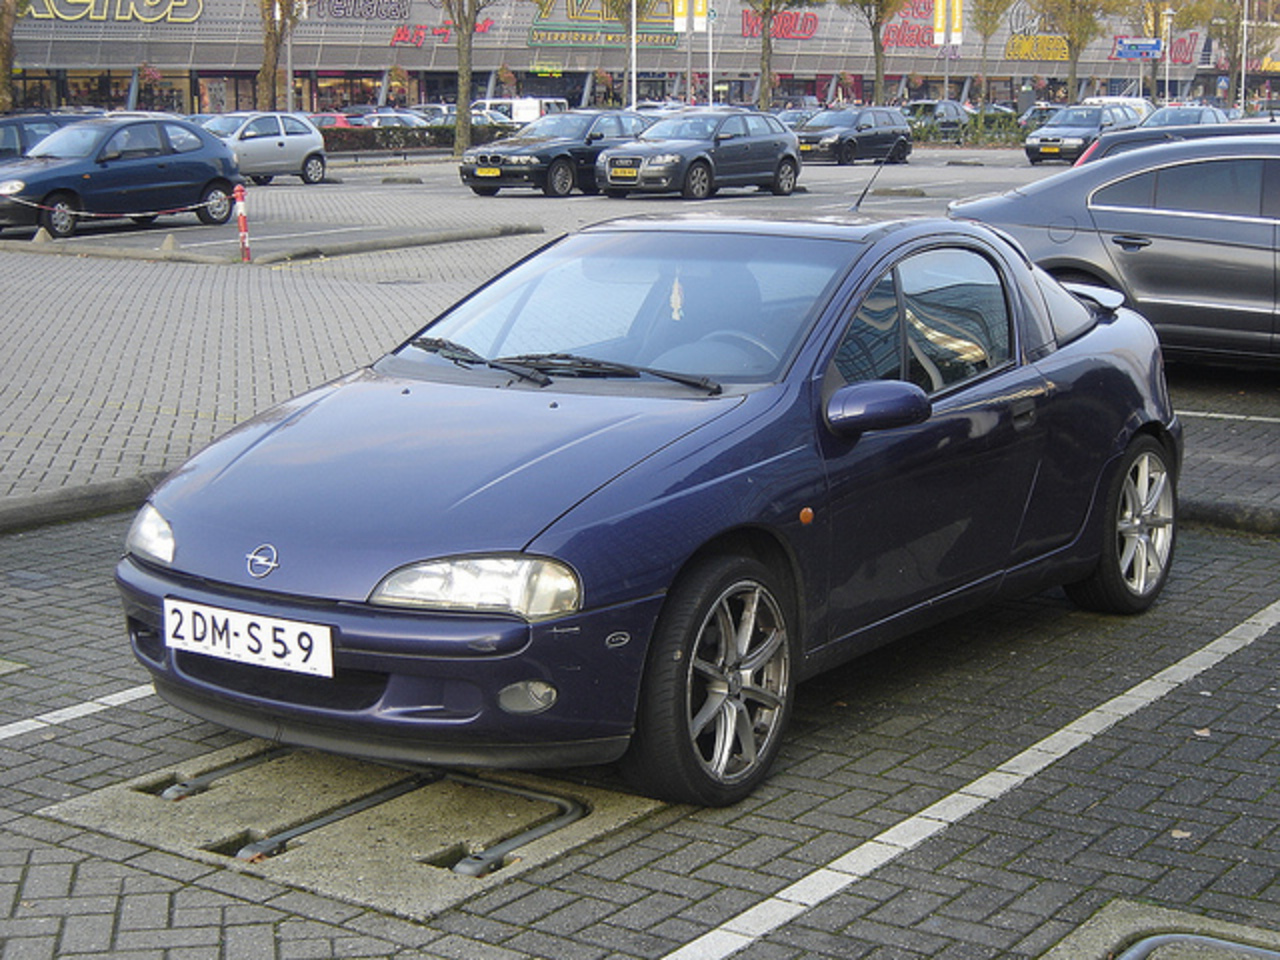 Rotterdam: Opel Tigra | Flickr - Photo Sharing!